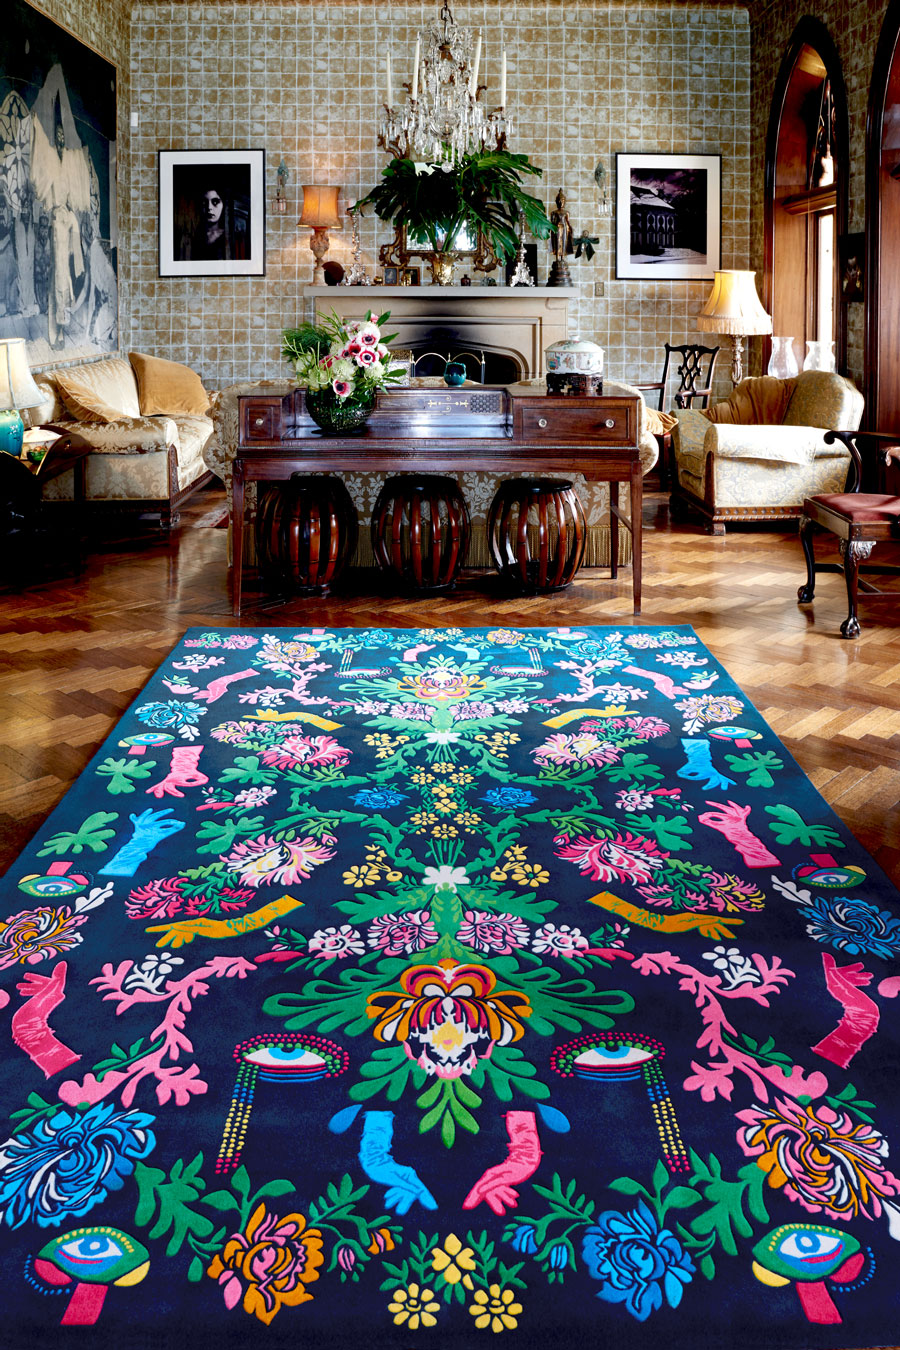 The Powder Room rug is a unique design inspired by 60s phsychadelia